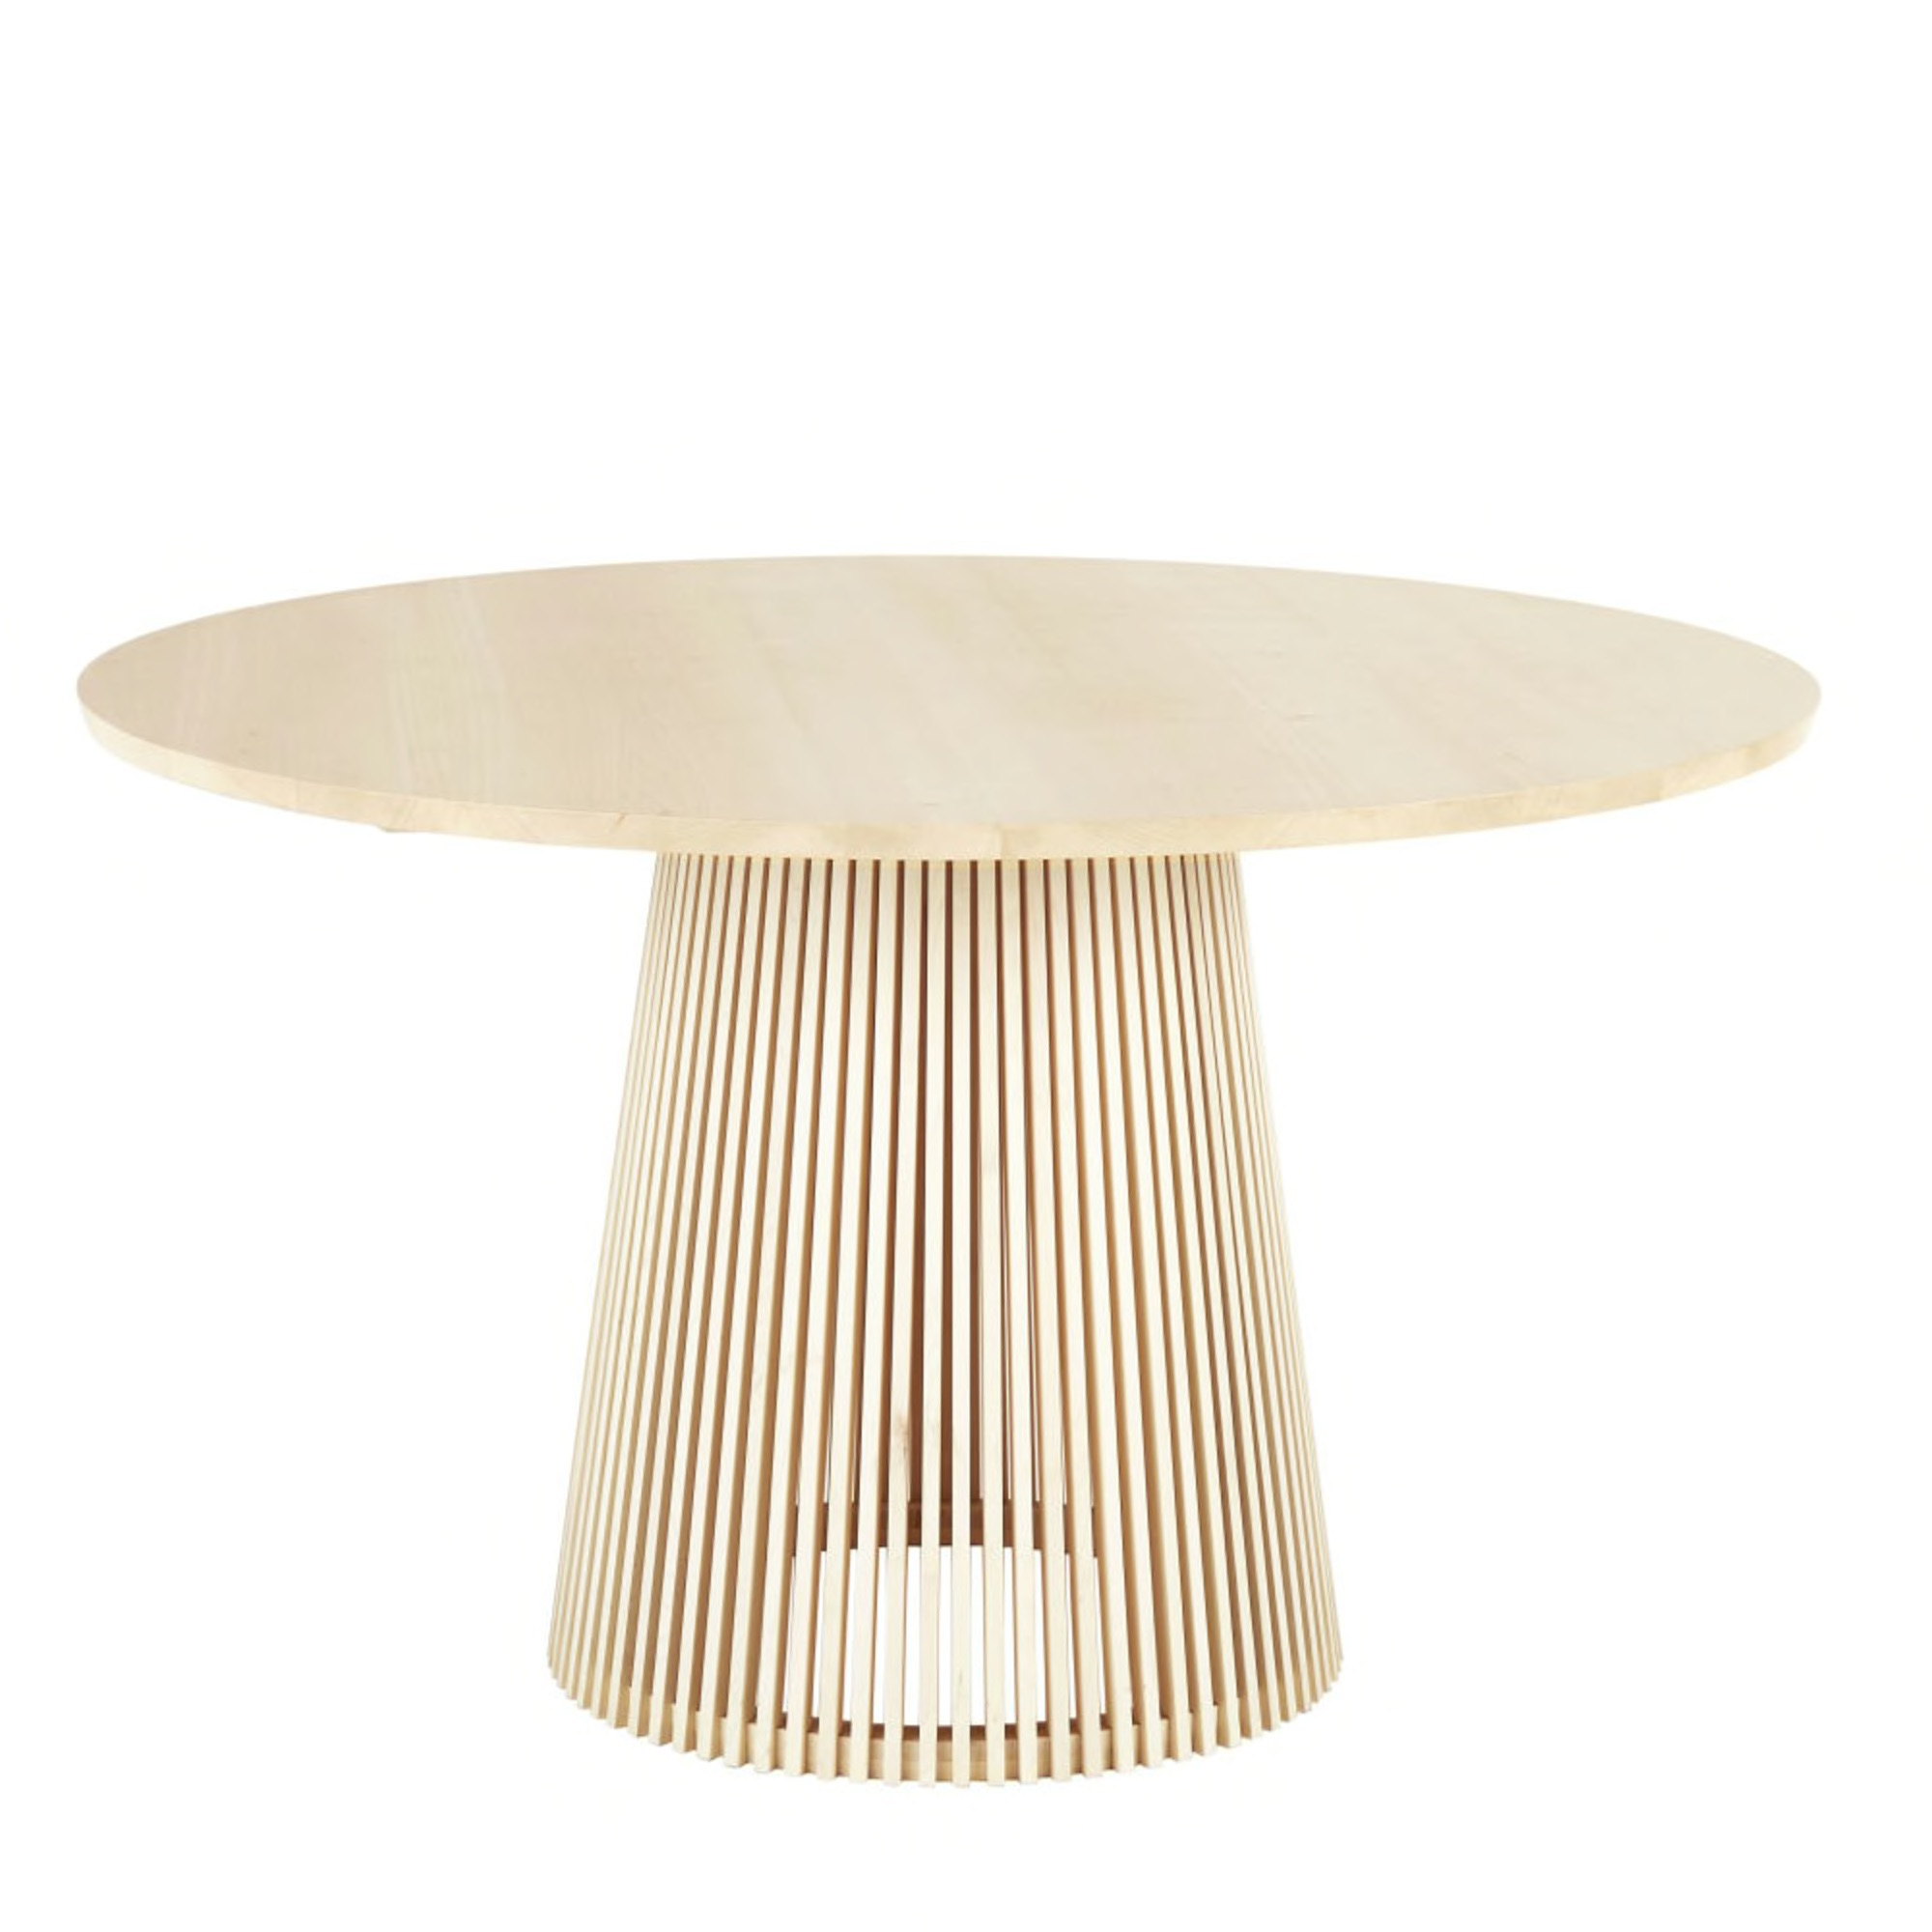 round-sycamore-6-seater-dining-table-d13